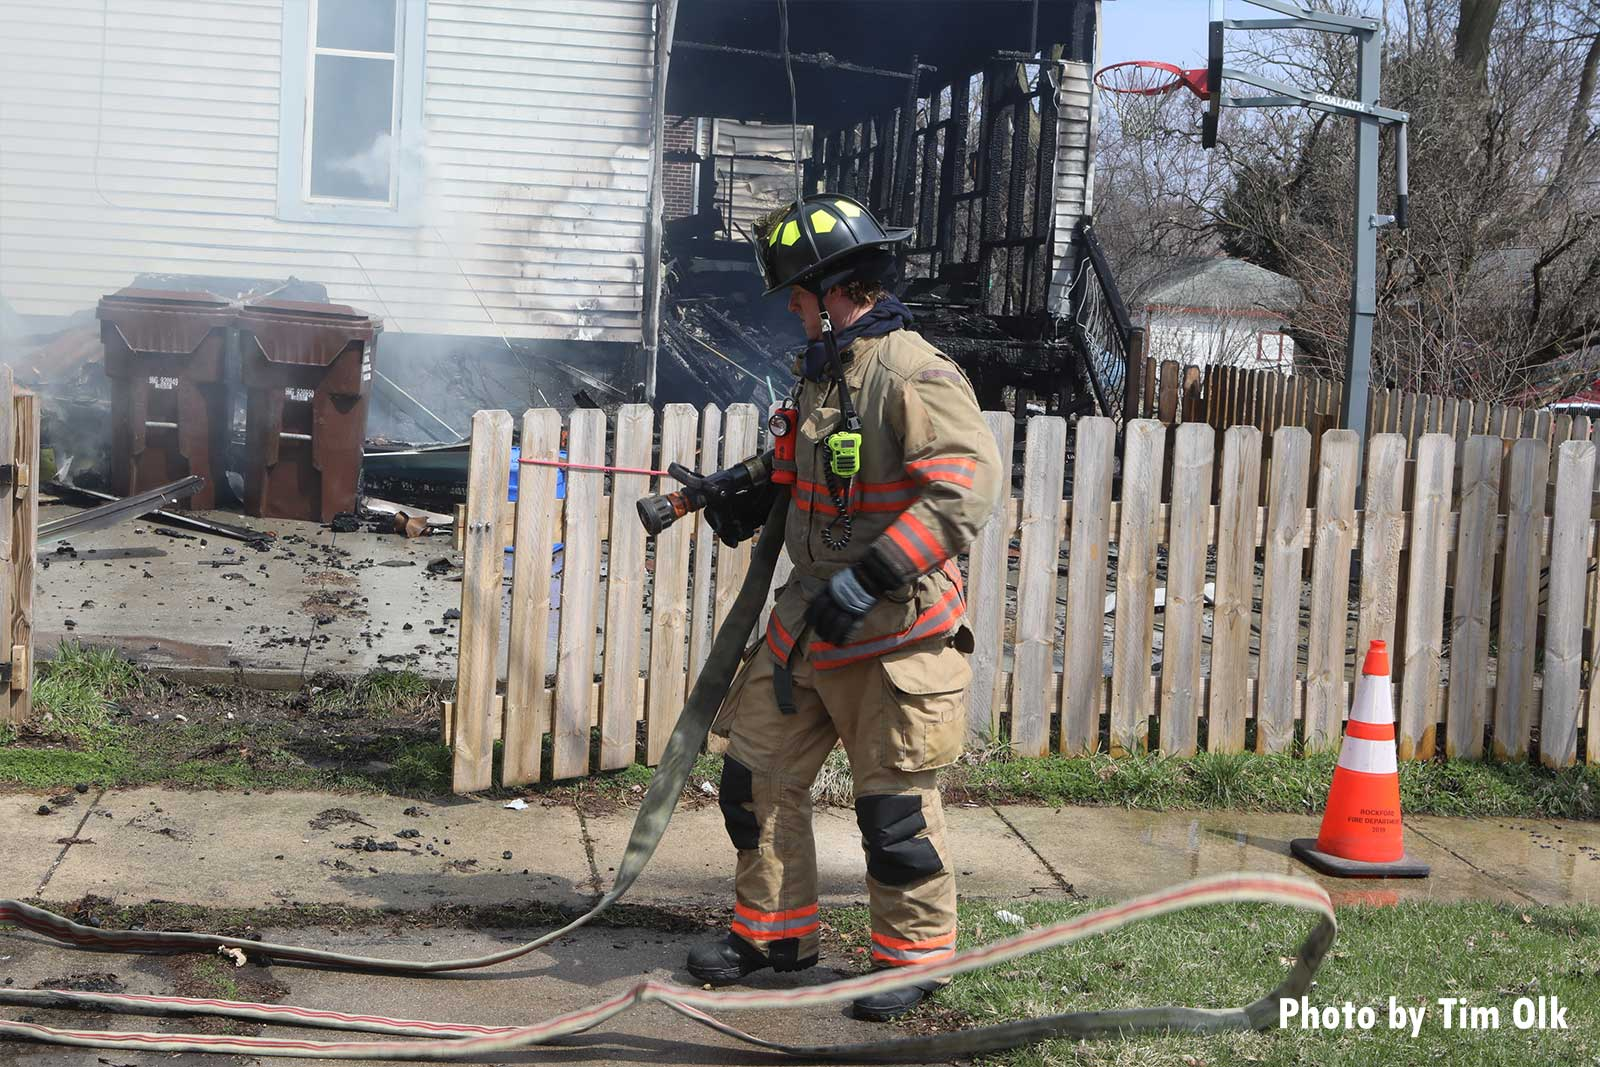 Firefighter with a hoseline at the fire scene